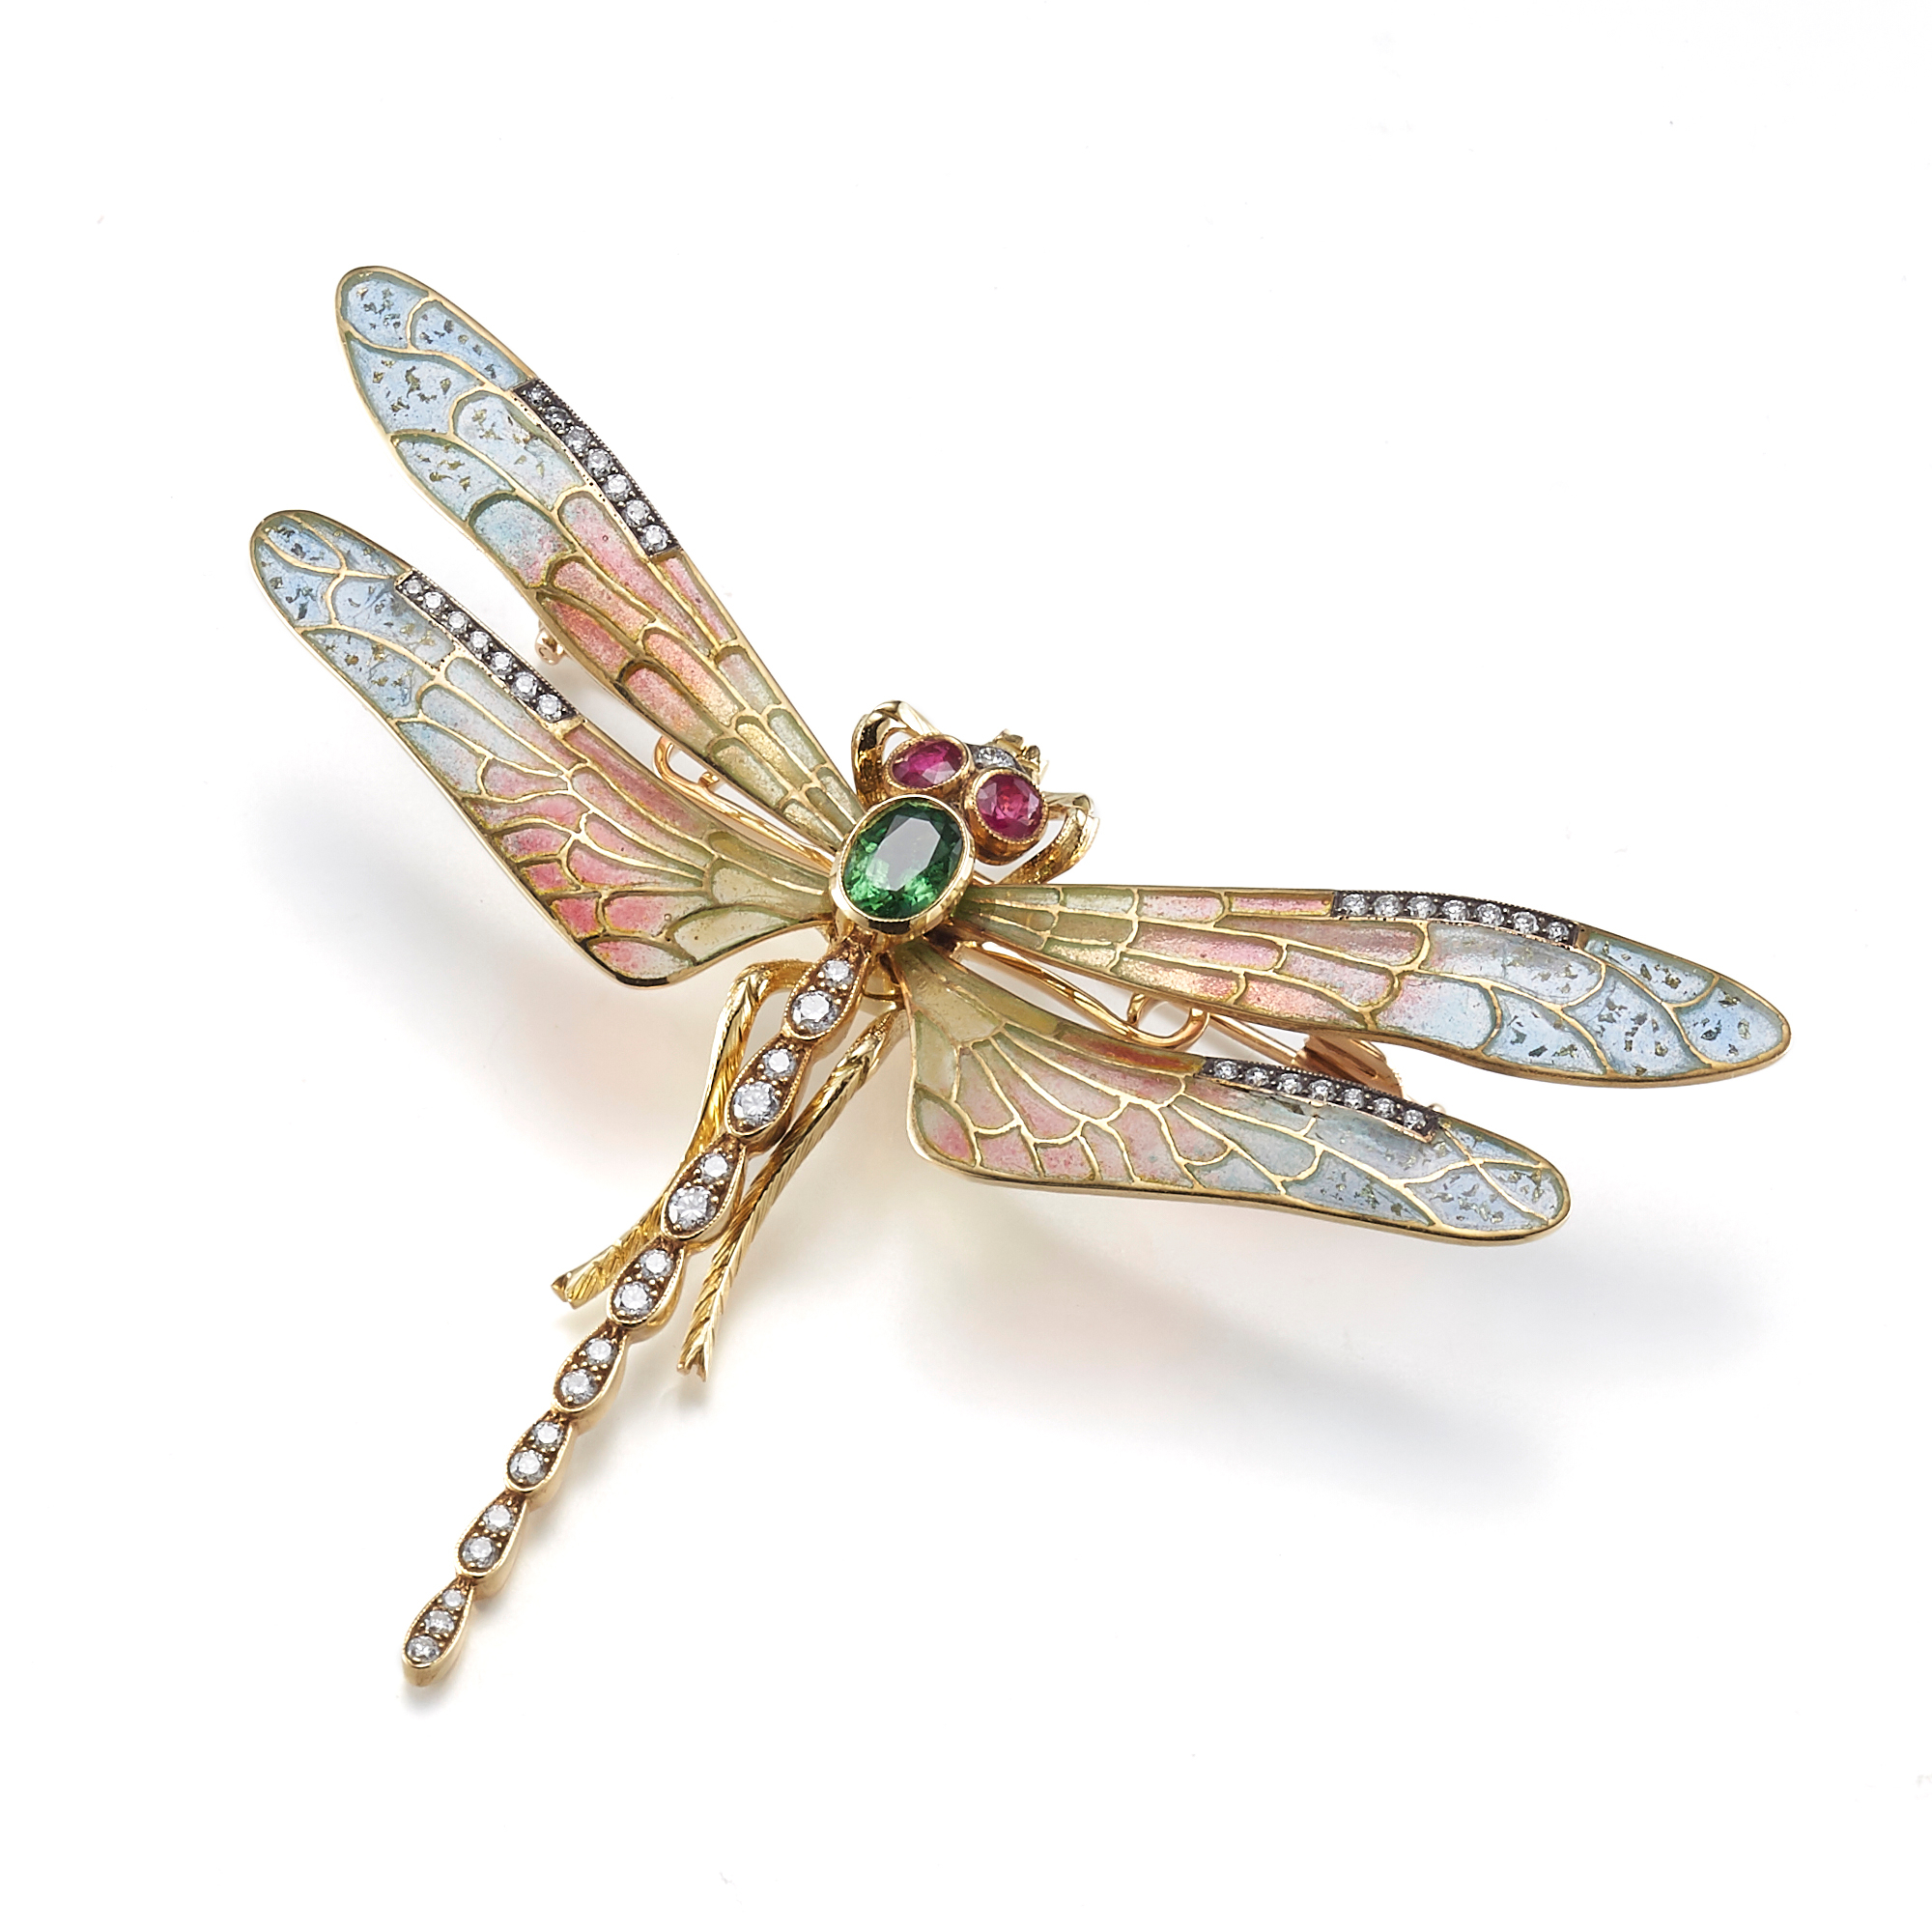 Cicada Plique-a-Jour with Diamonds, Tsavorite & Rubies Dragonfly Brooch